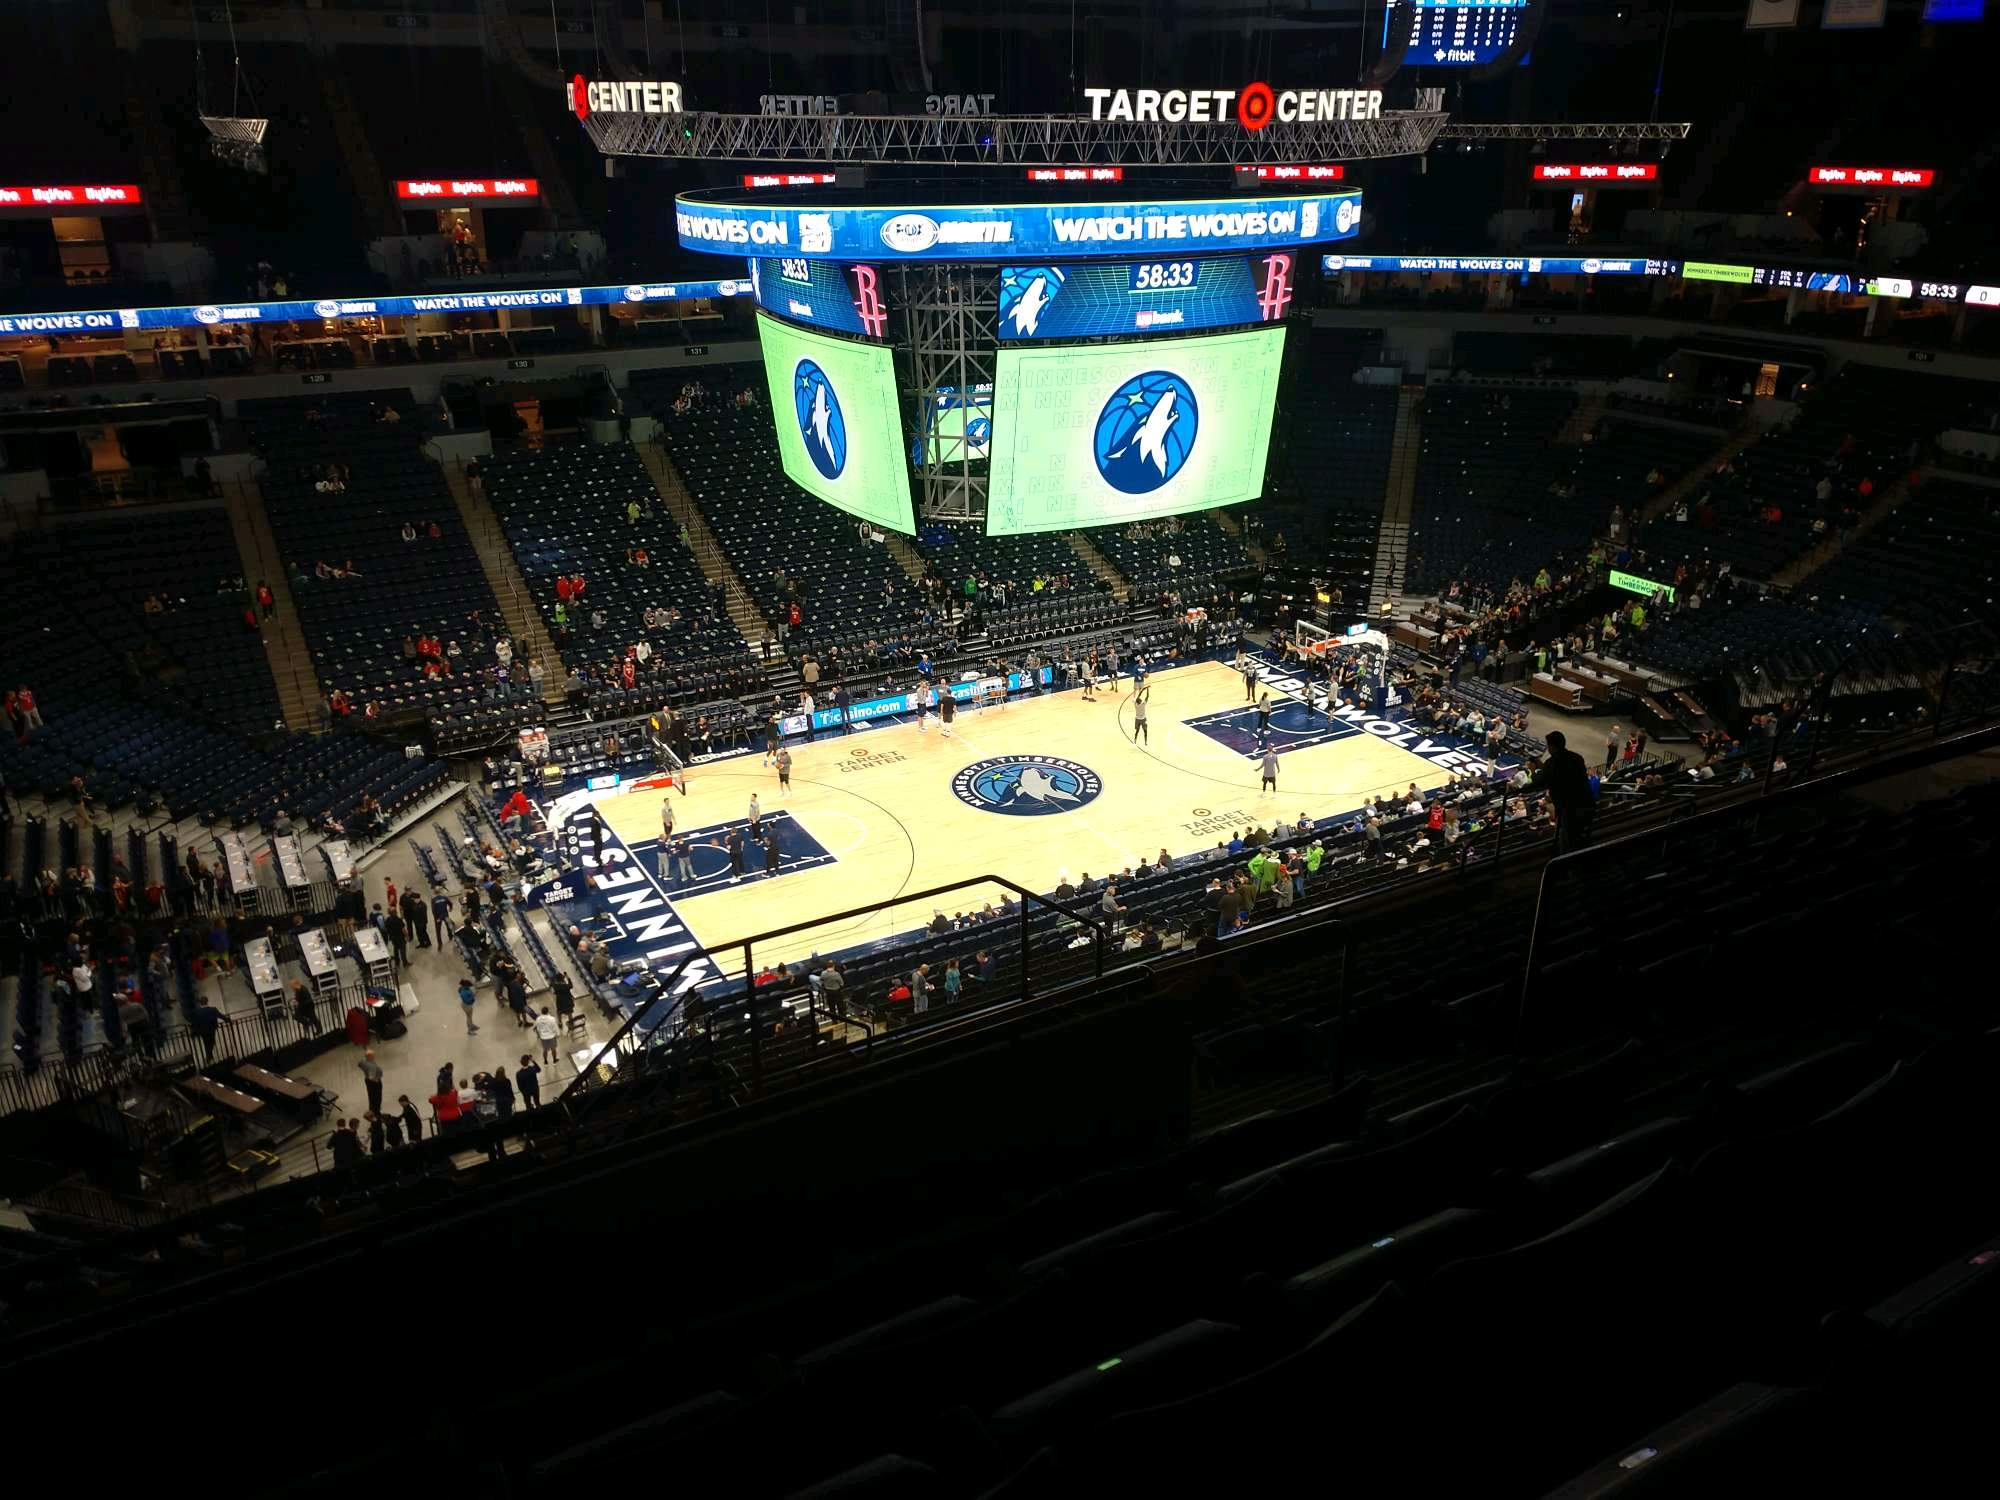 Target Center Section 214 Row N Seat 6